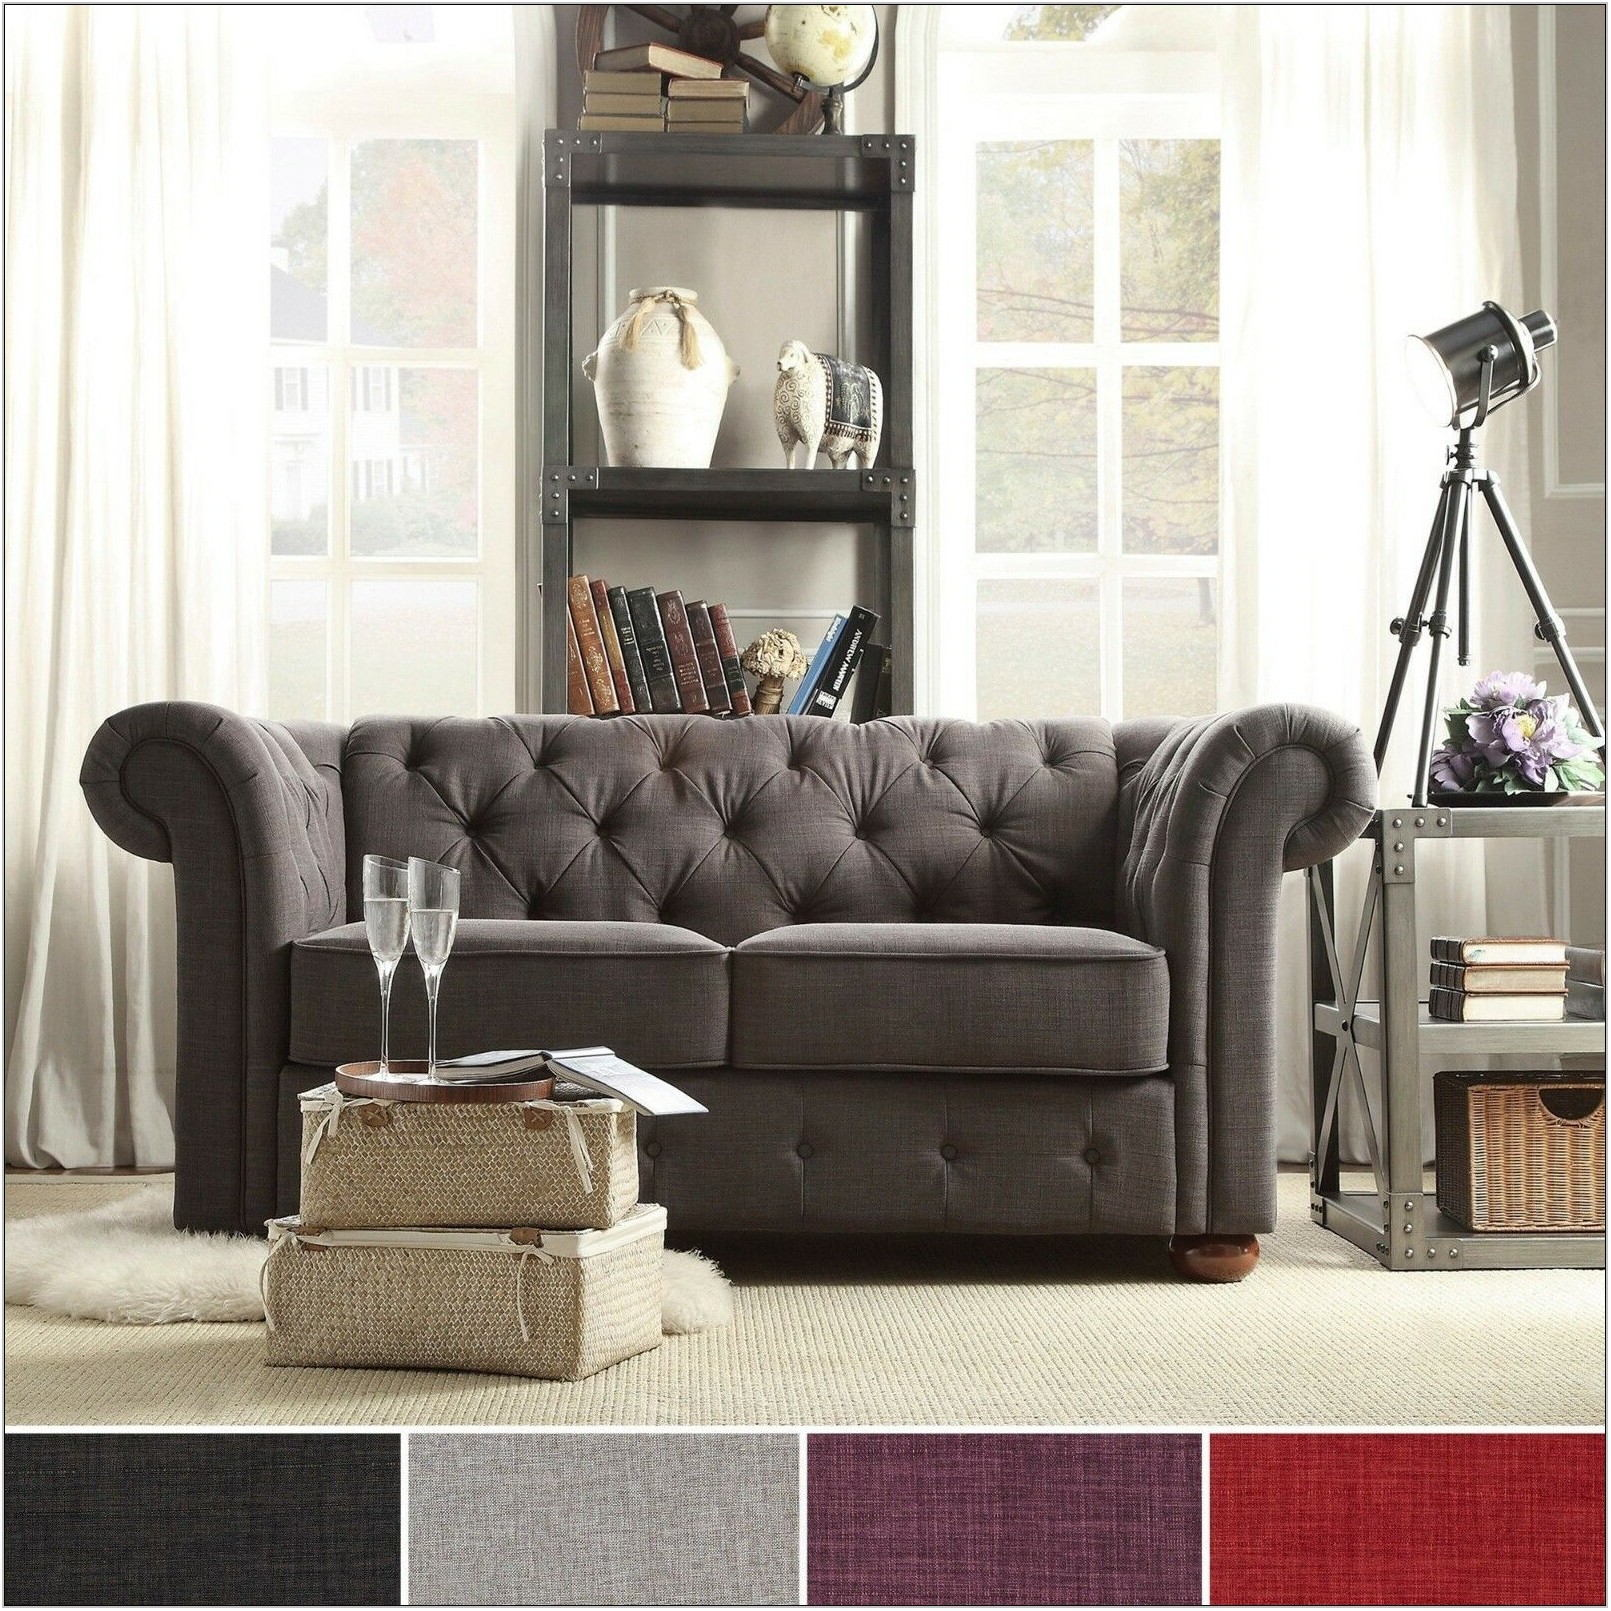 Tufted Living Room Furniture